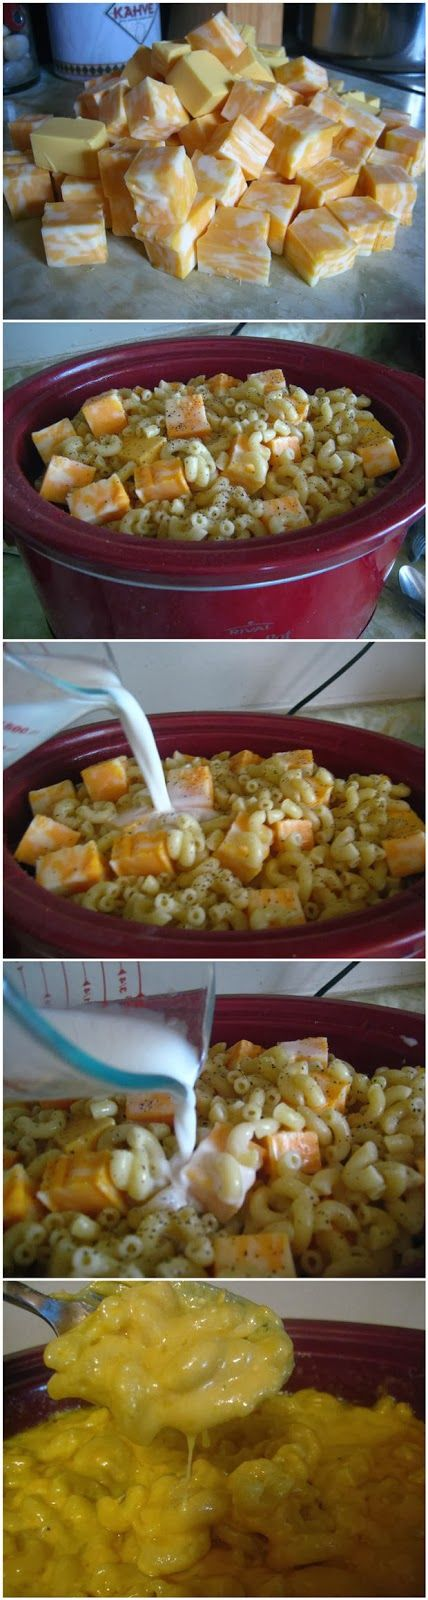 Crock Pot Mac and Cheese ... I''m NOT a mac and cheese person but this would be quick and easy for a potluck dish